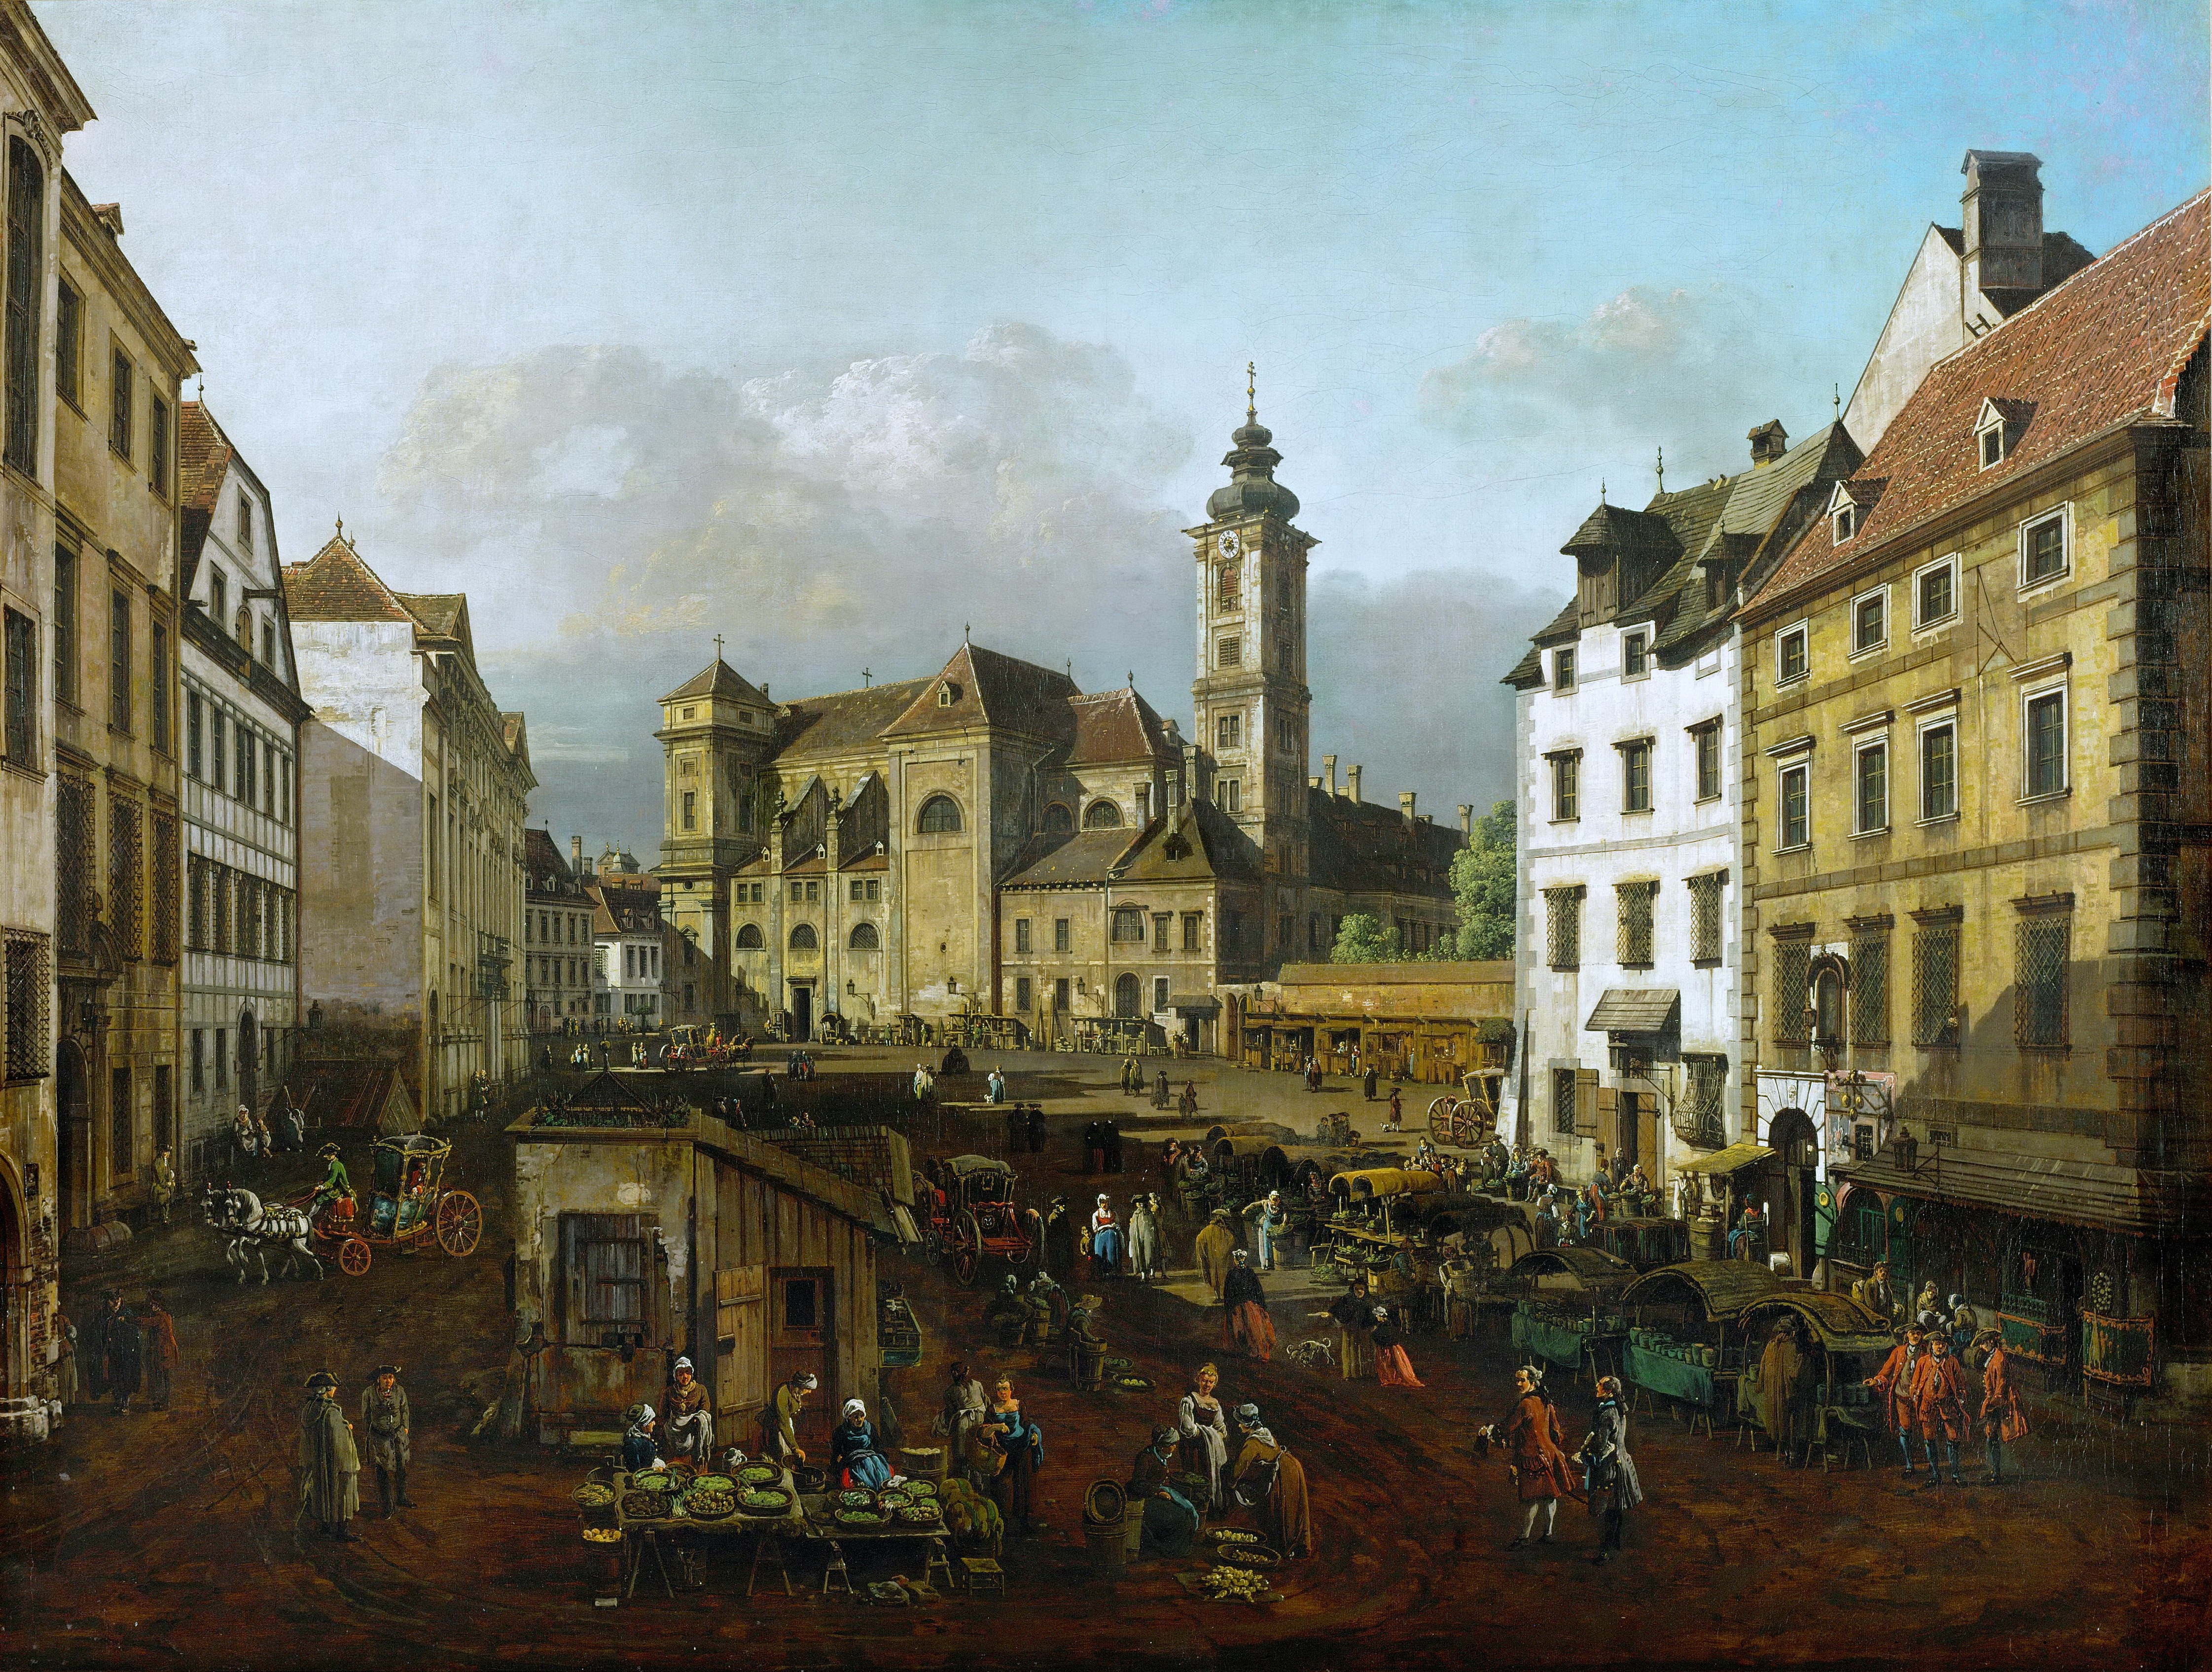 http://upload.wikimedia.org/wikipedia/commons/3/3c/Canaletto_%28I%29_057.jpg